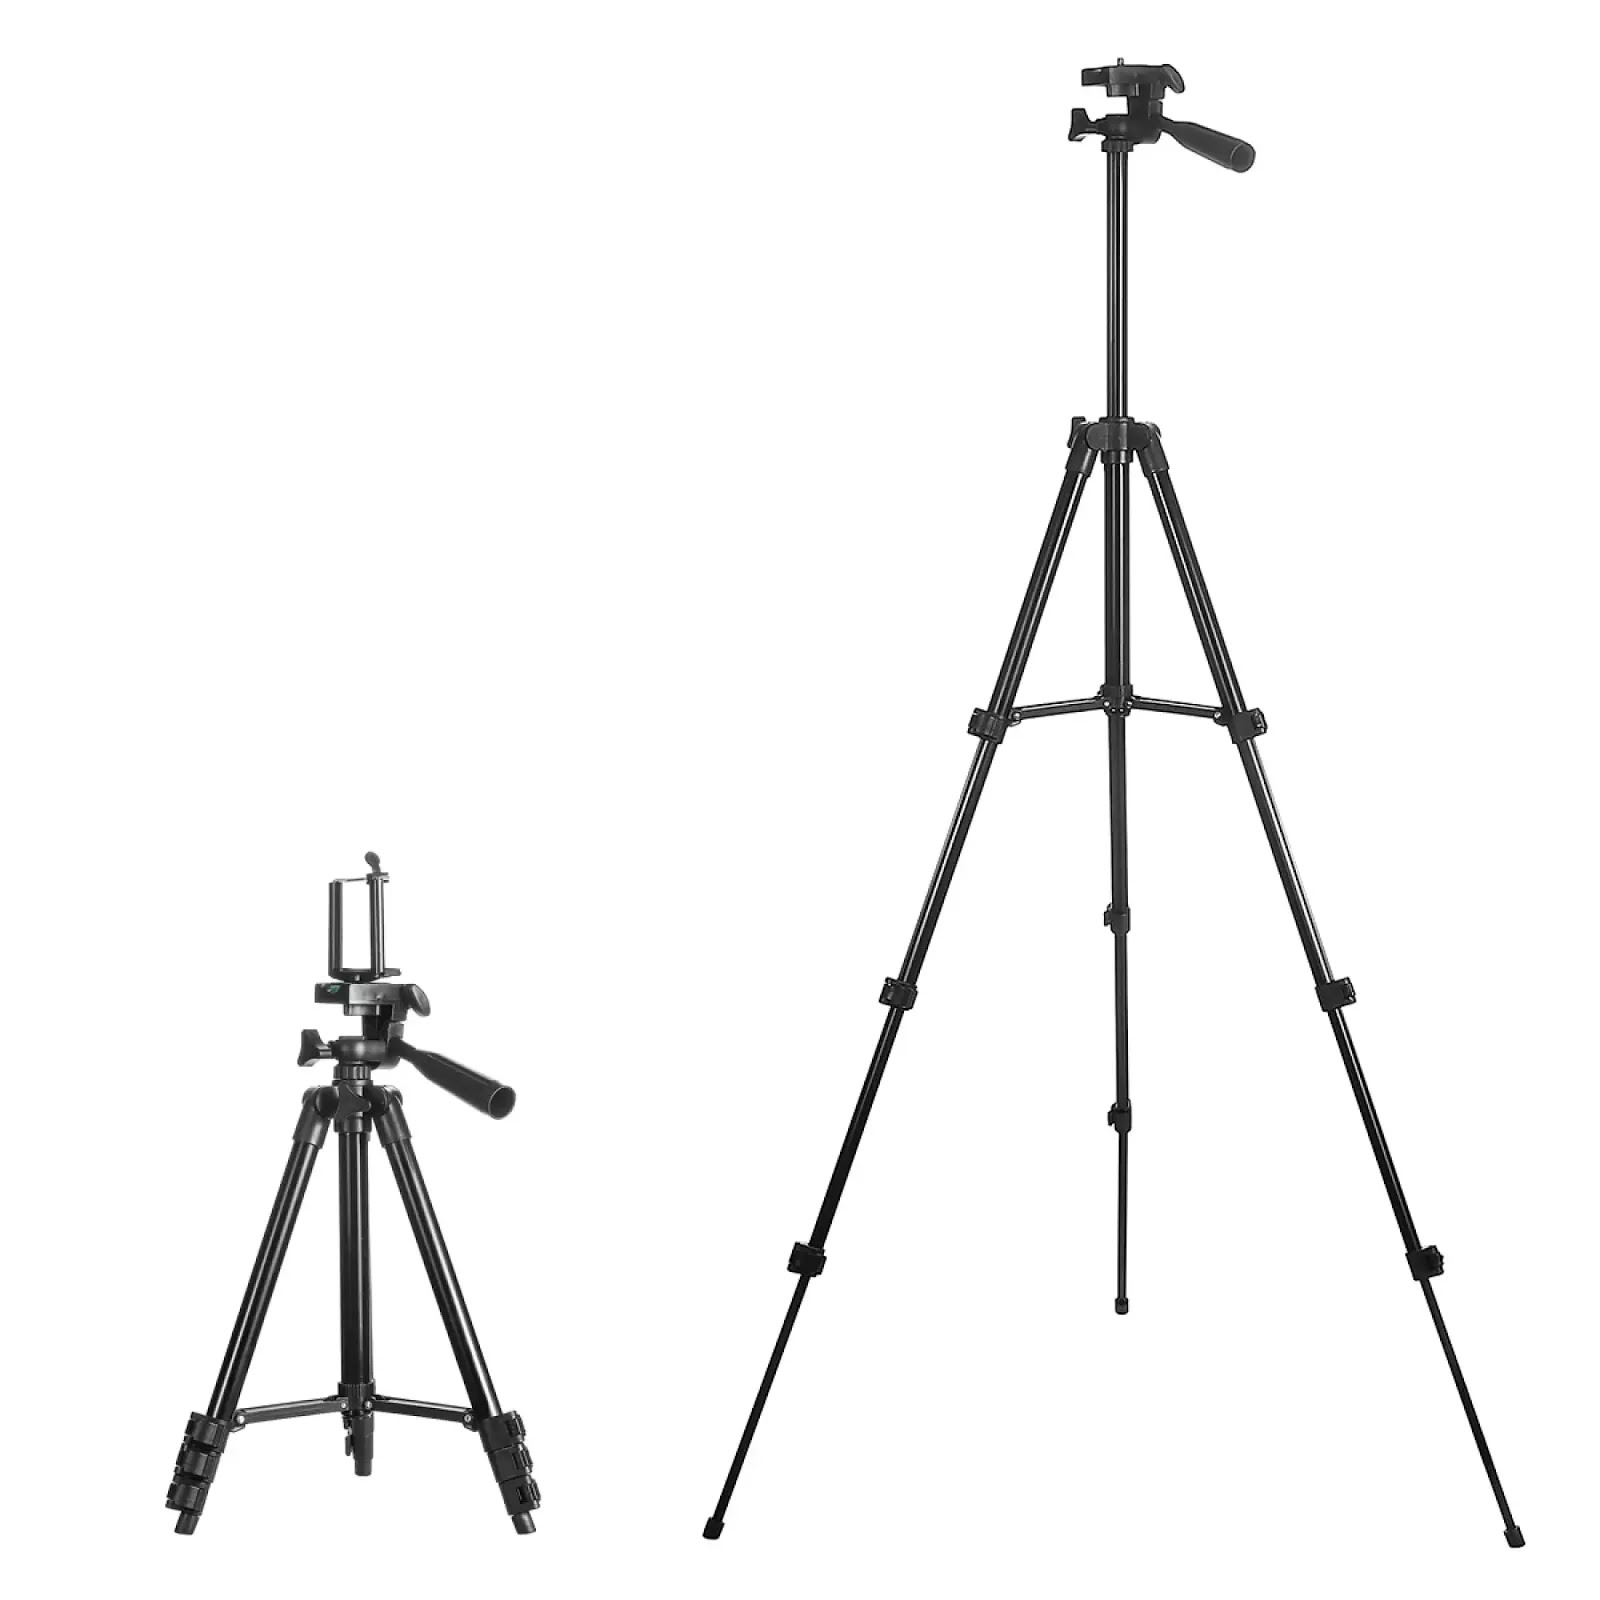 Buy Portable Phone Tripod